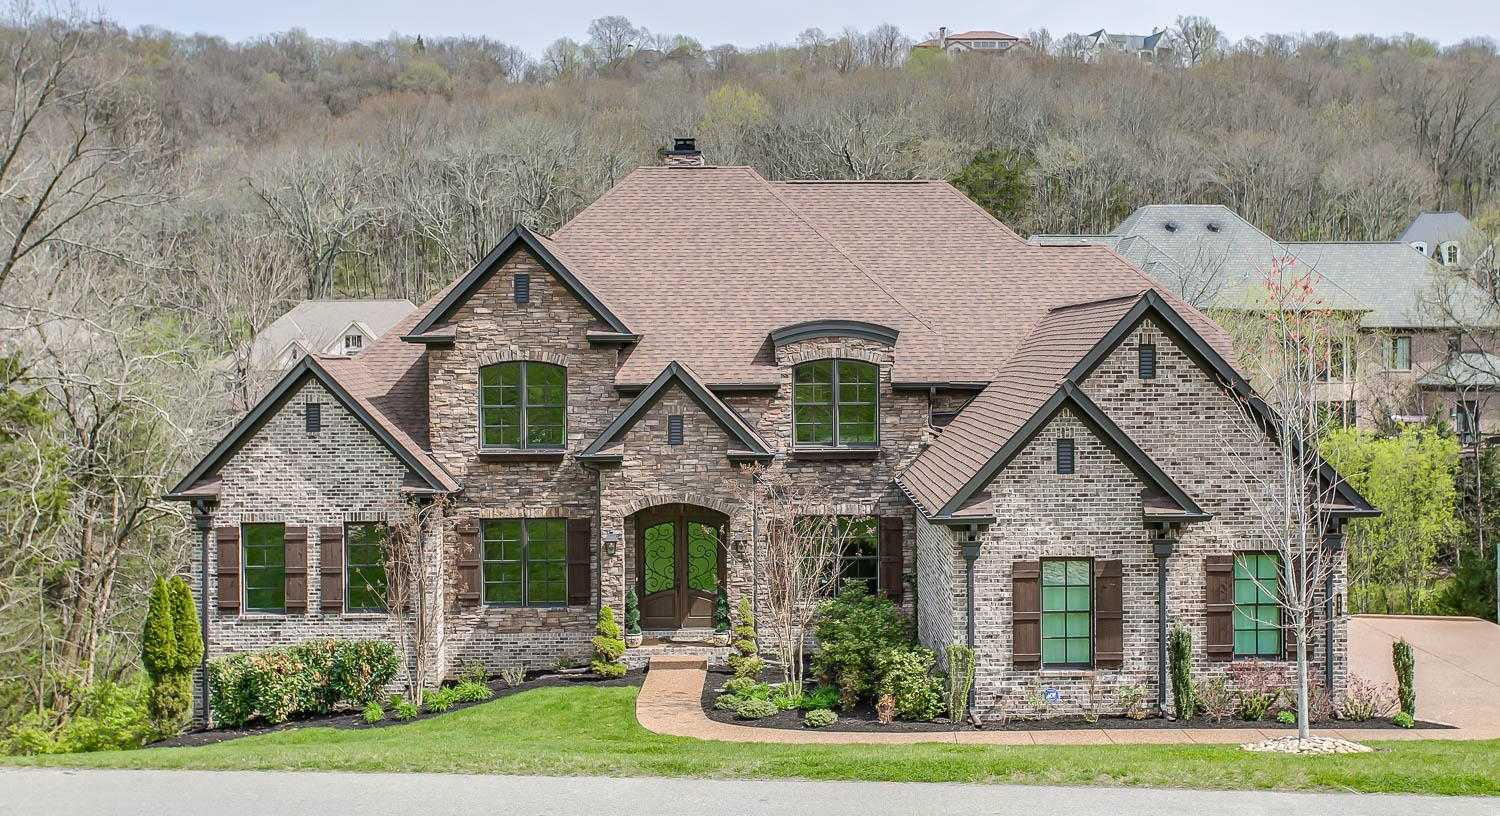 $1,259,000 - 7Br/5Ba -  for Sale in Avalon Sec 3, Franklin